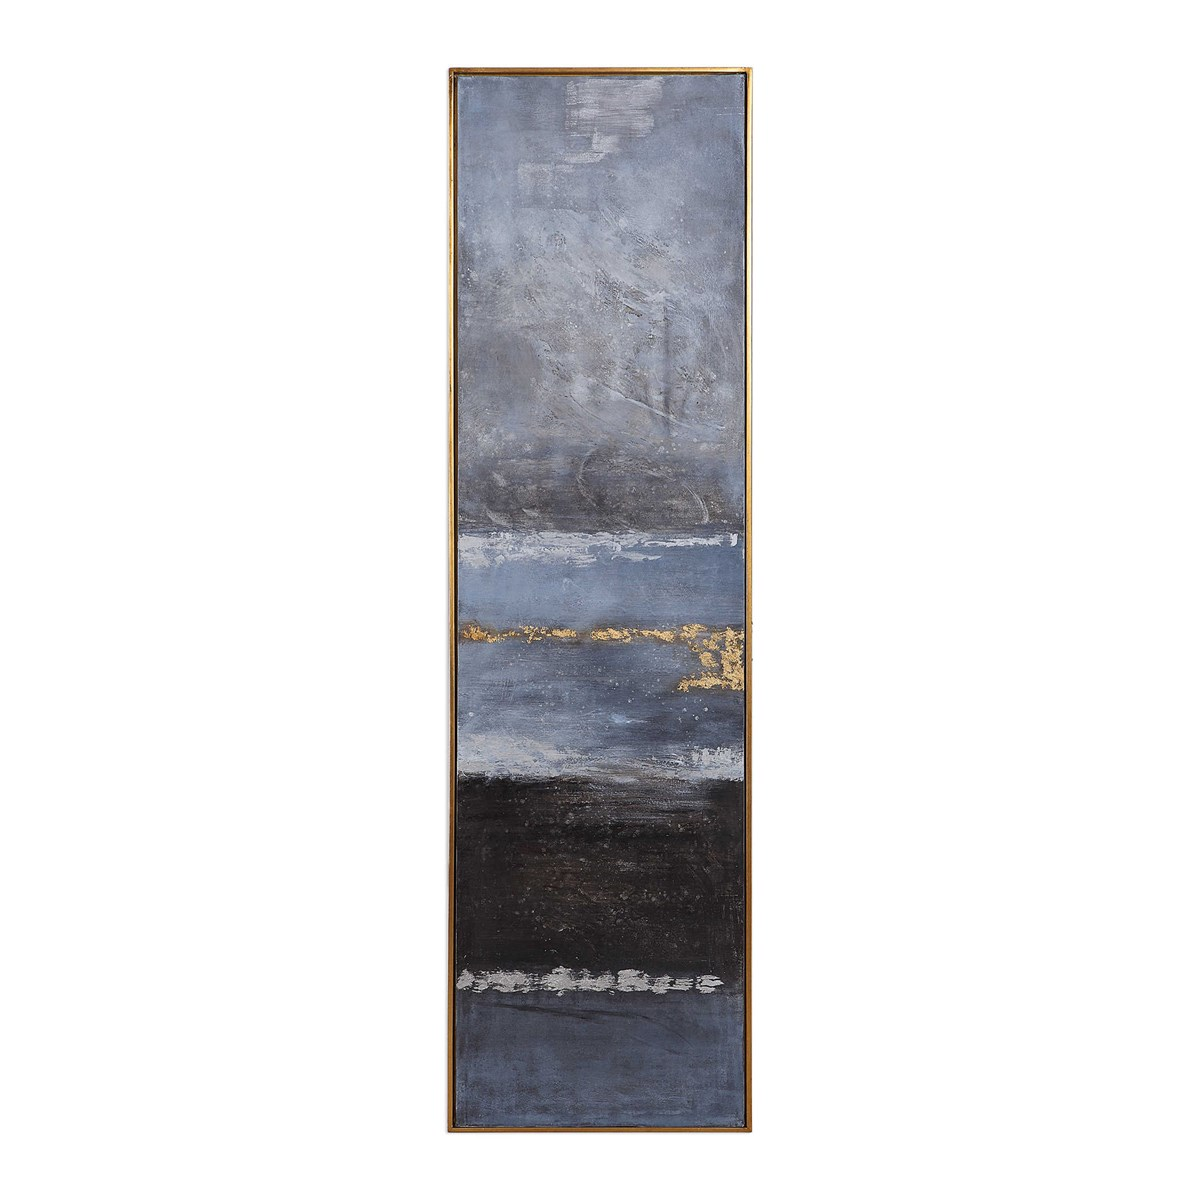 Gold Leaf Horizon-$420.00